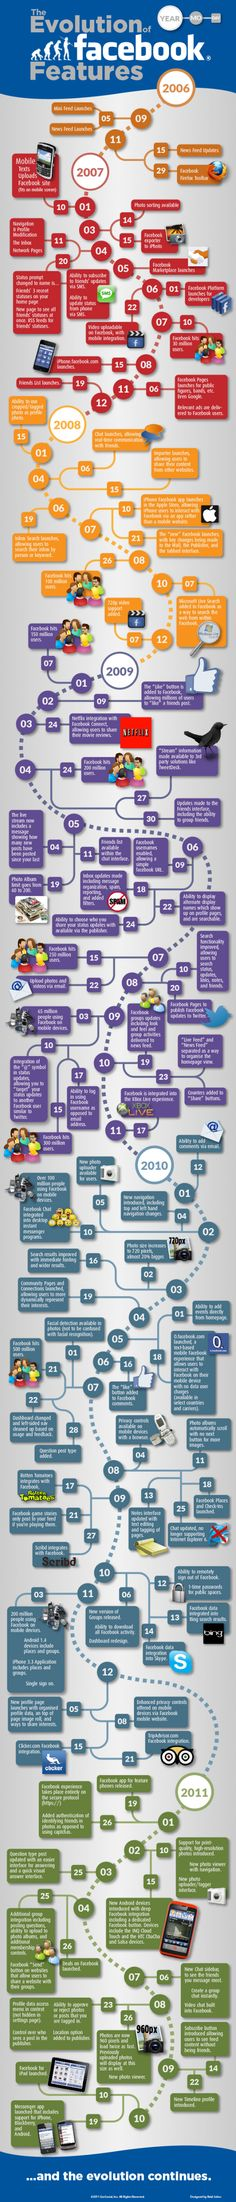 evolution of facebook 2006-